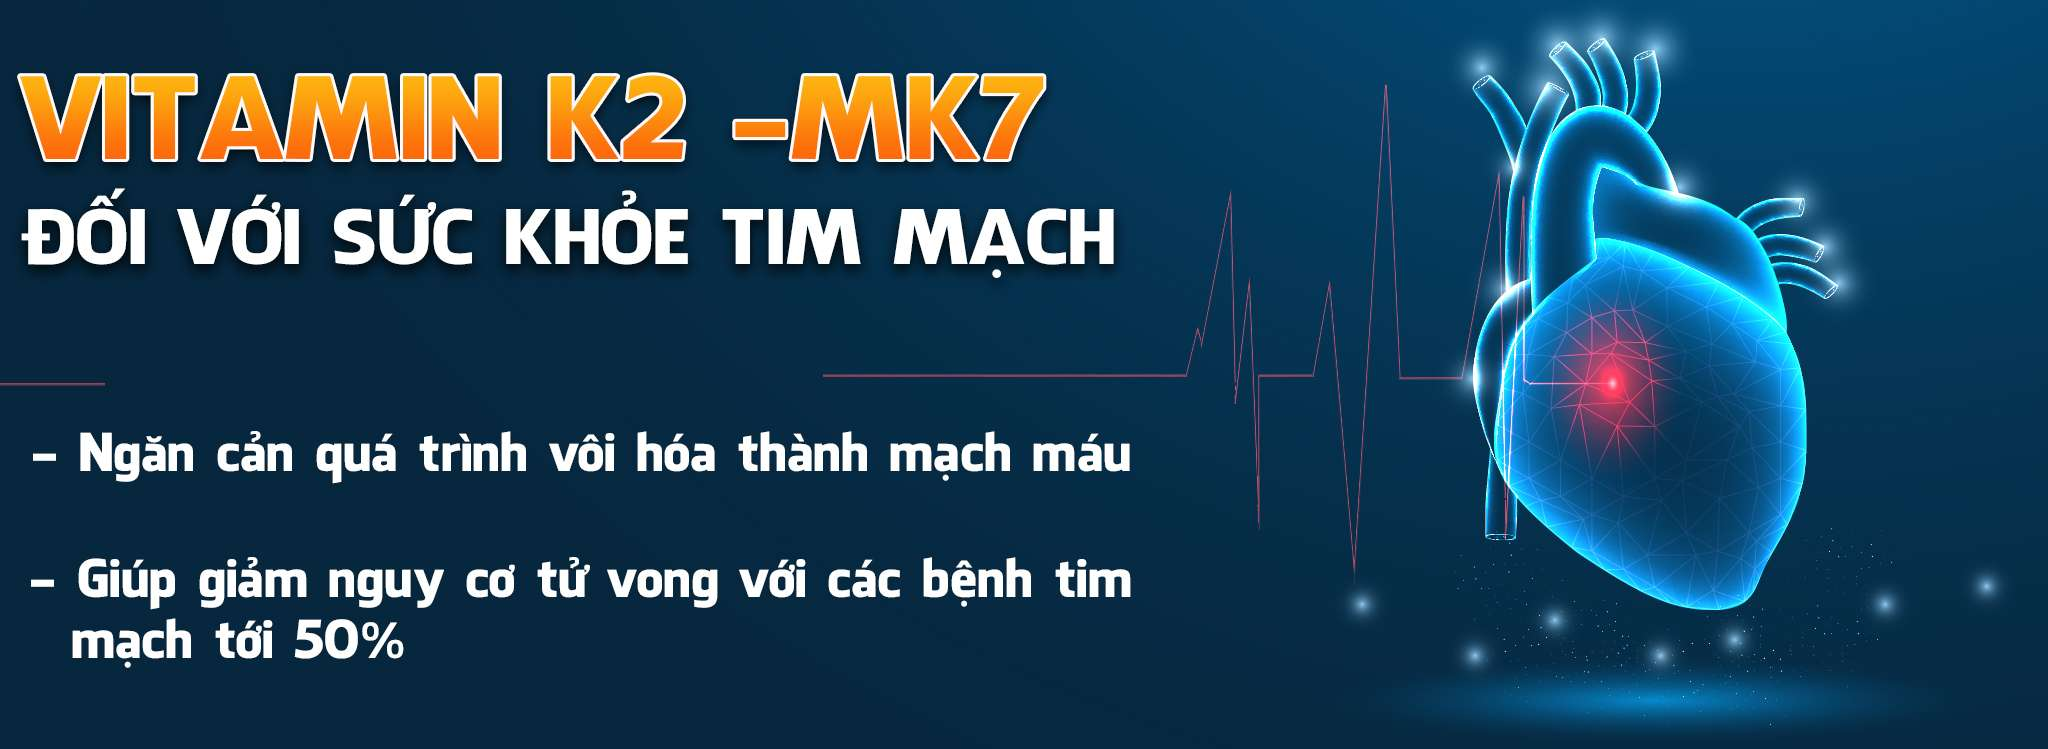 vitamin k2 doi voi suc khoe tim mach